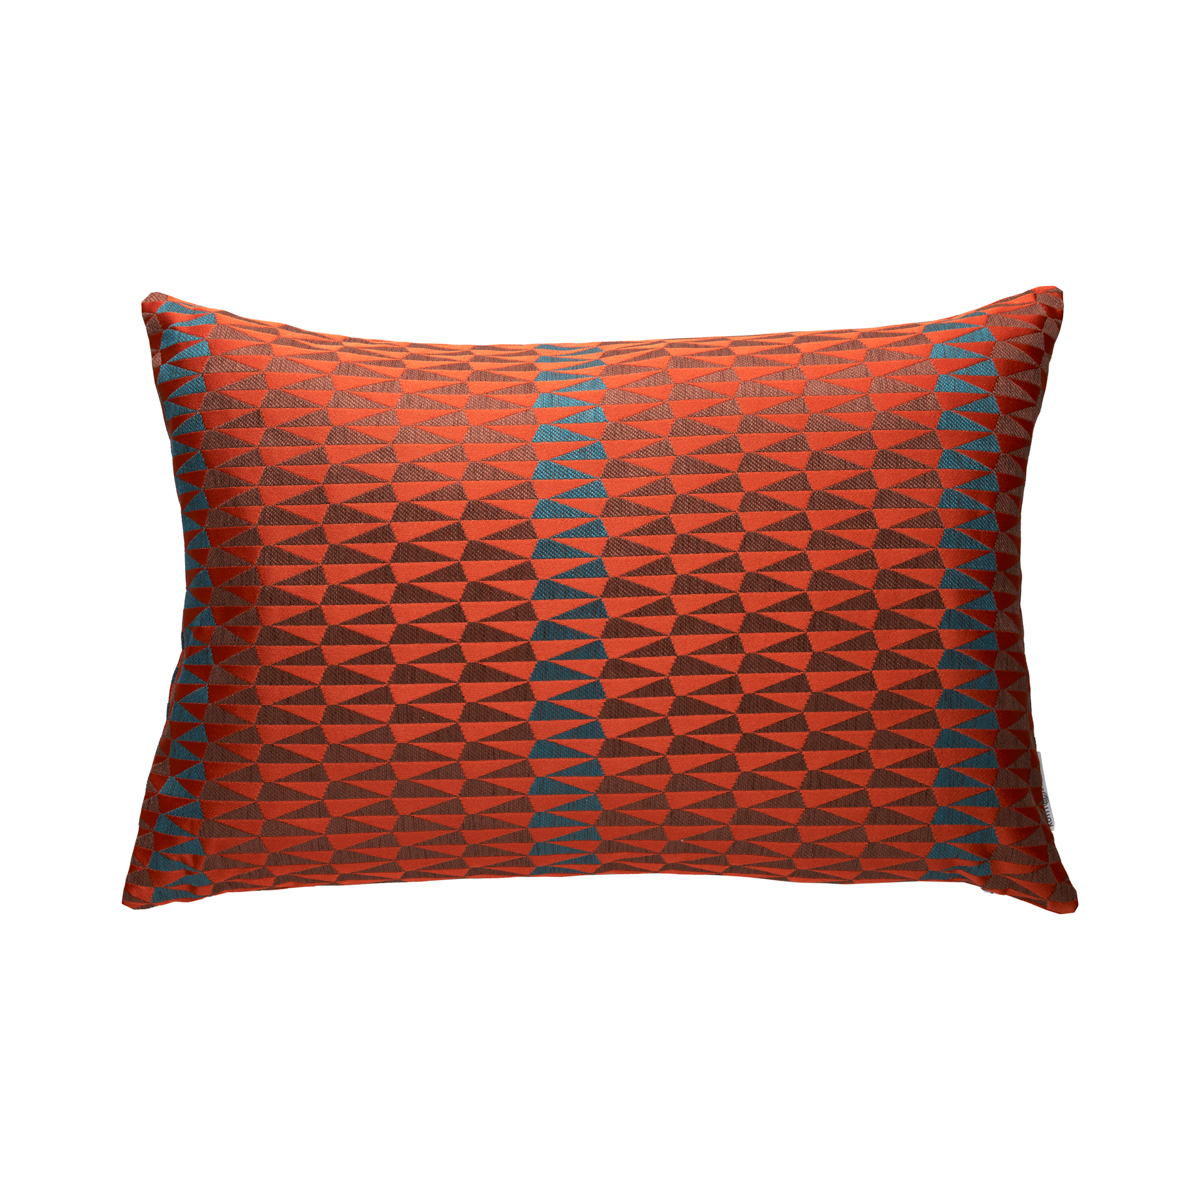 Rusty Arrow Pillow